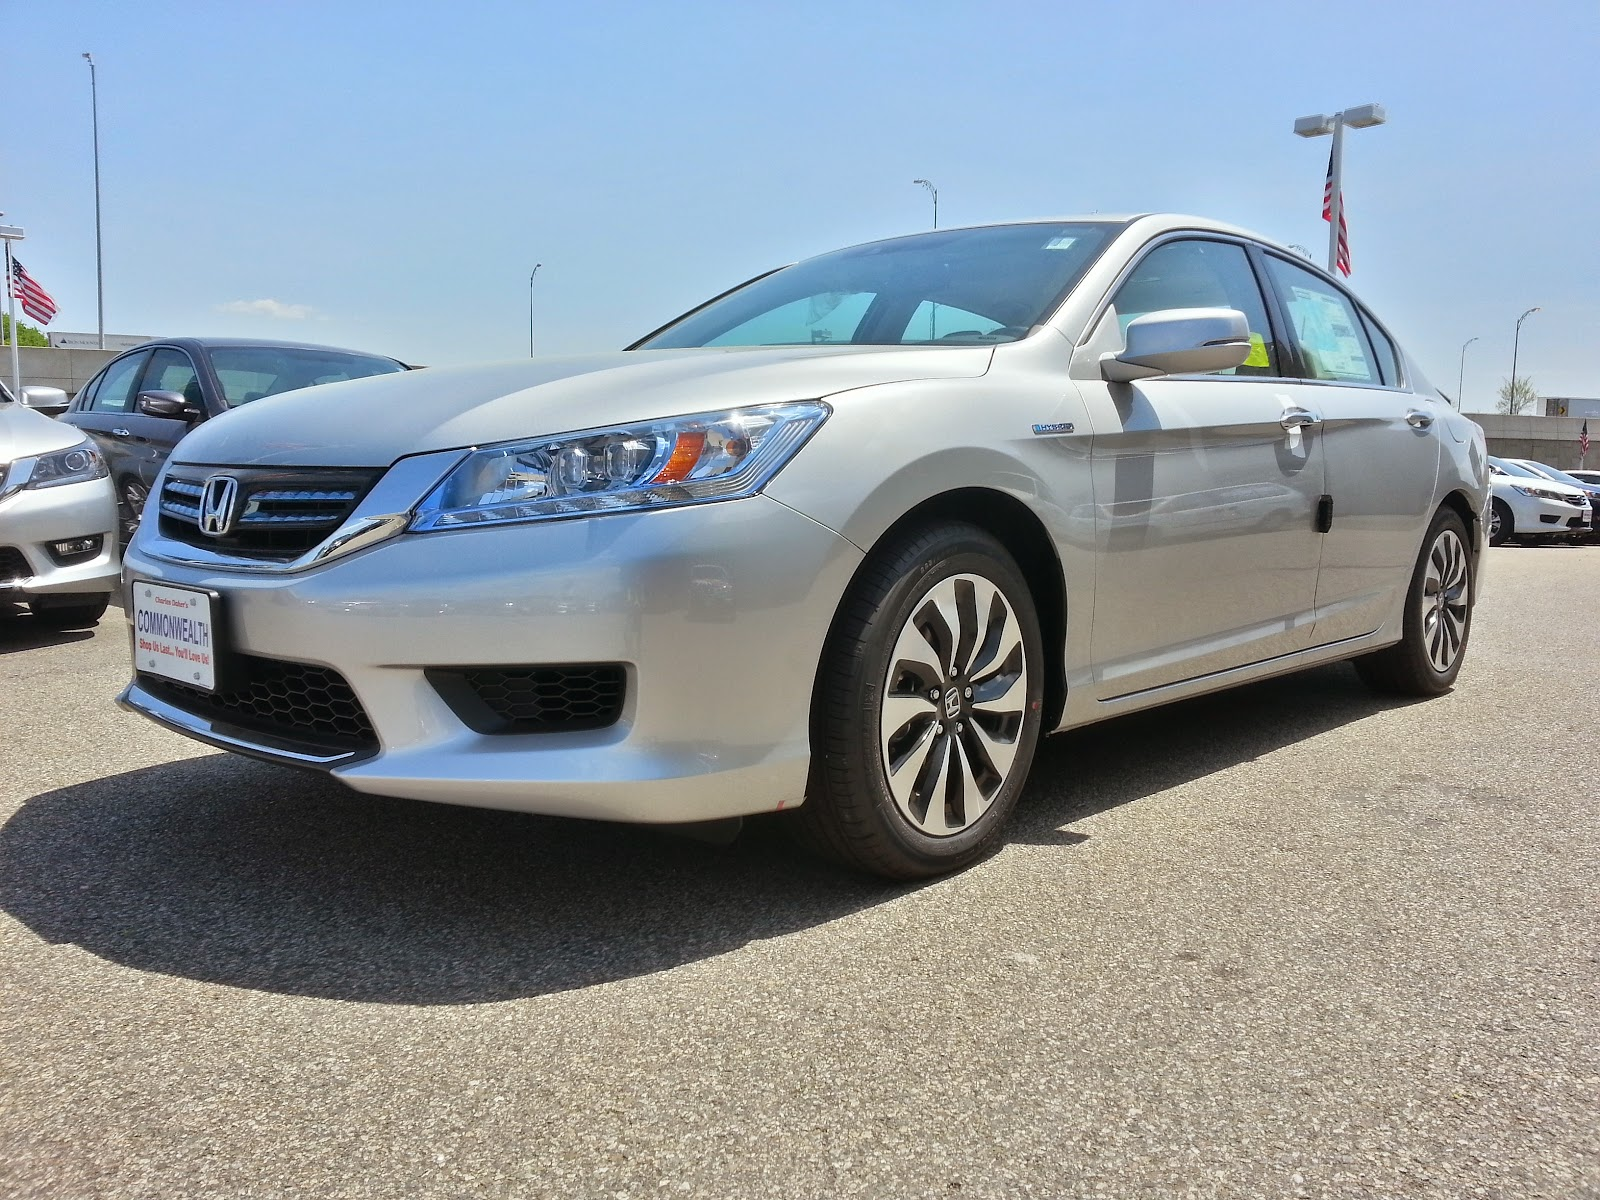 east west brothers garage test drive 2014 honda accord hybrid touring. Black Bedroom Furniture Sets. Home Design Ideas